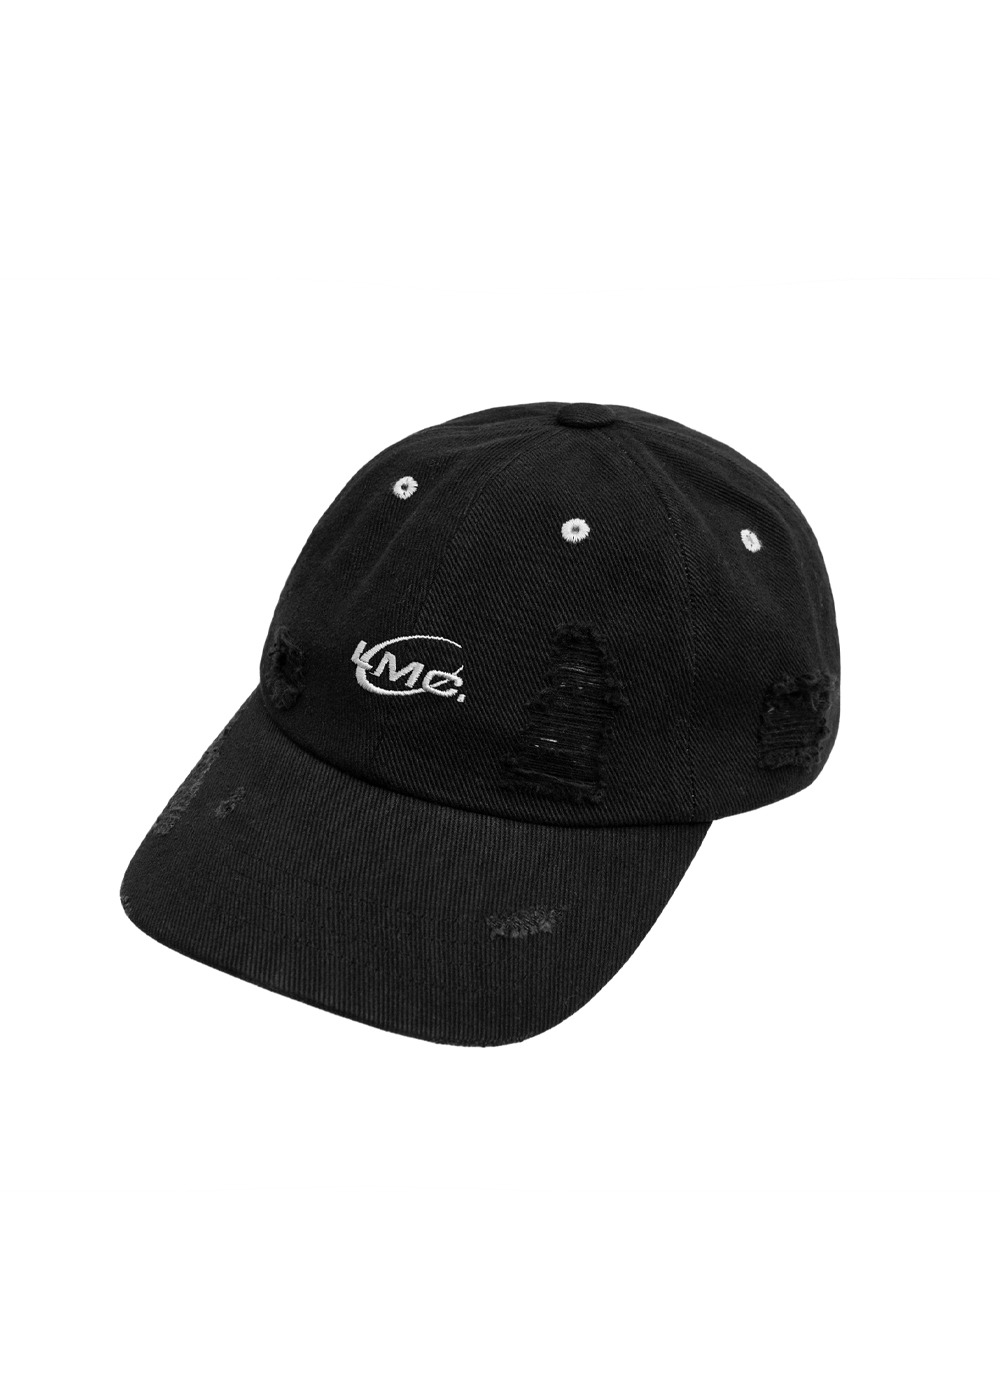 LMC SHREDDED PLANET 6 PANEL CAP black